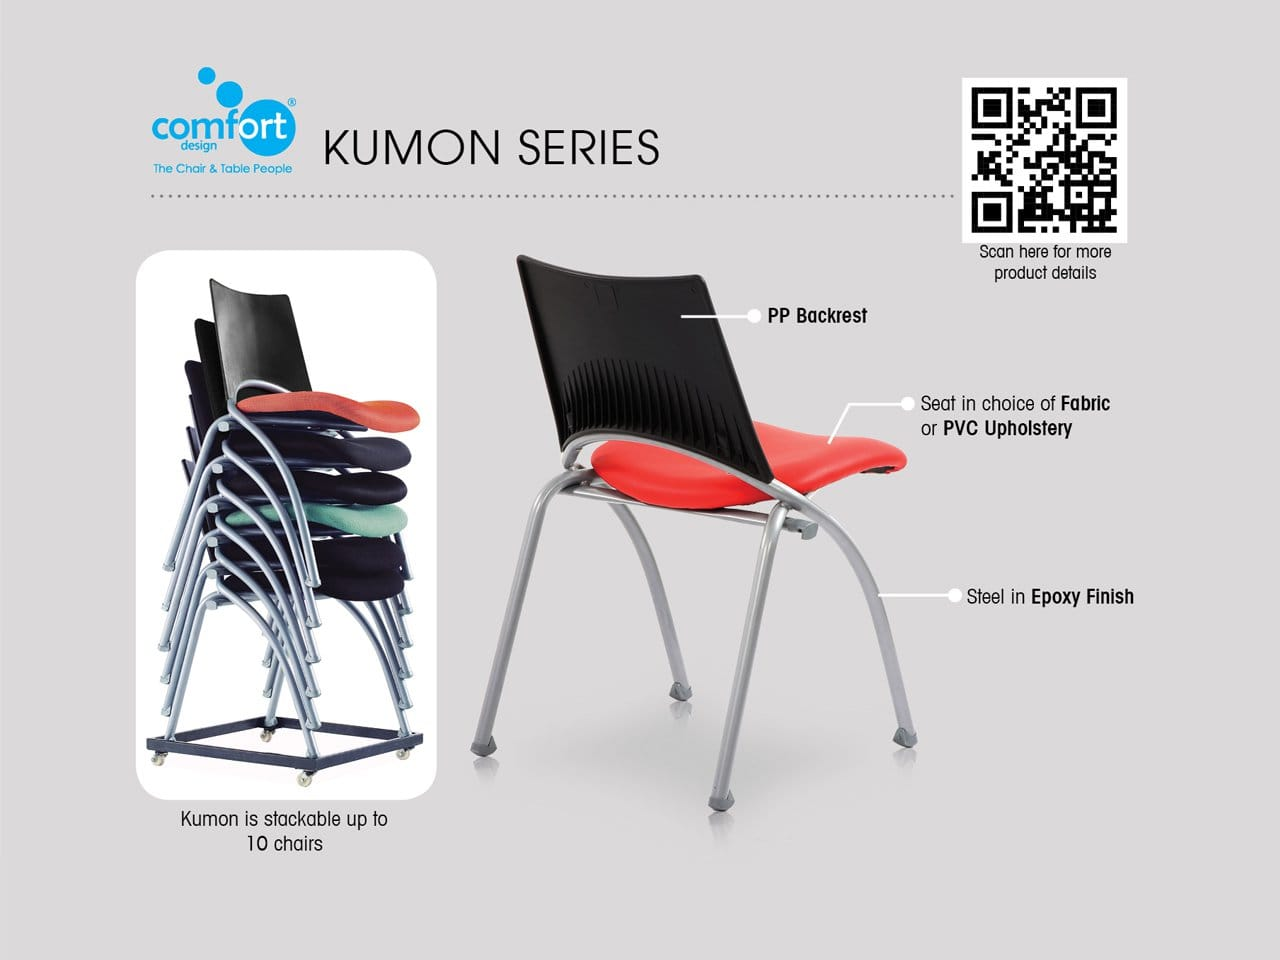 Kumon Chair Comfort Design The Chair Amp Table People